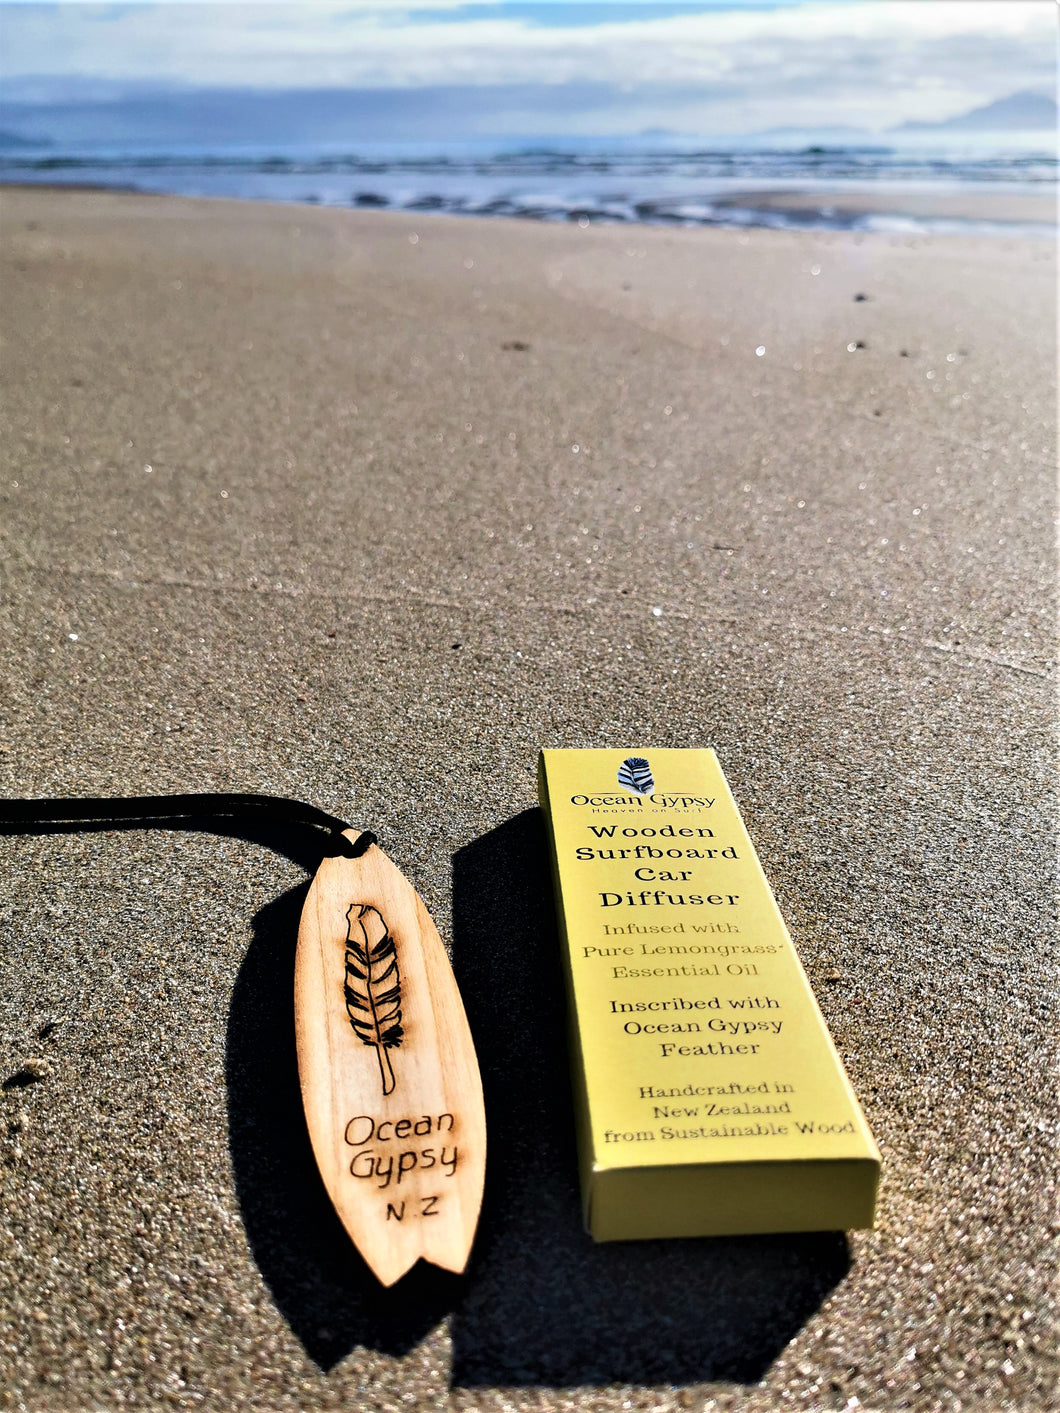 Lemongrass Wooden Surfboard feather Car Diffuser - Ocean Gypsy NZ